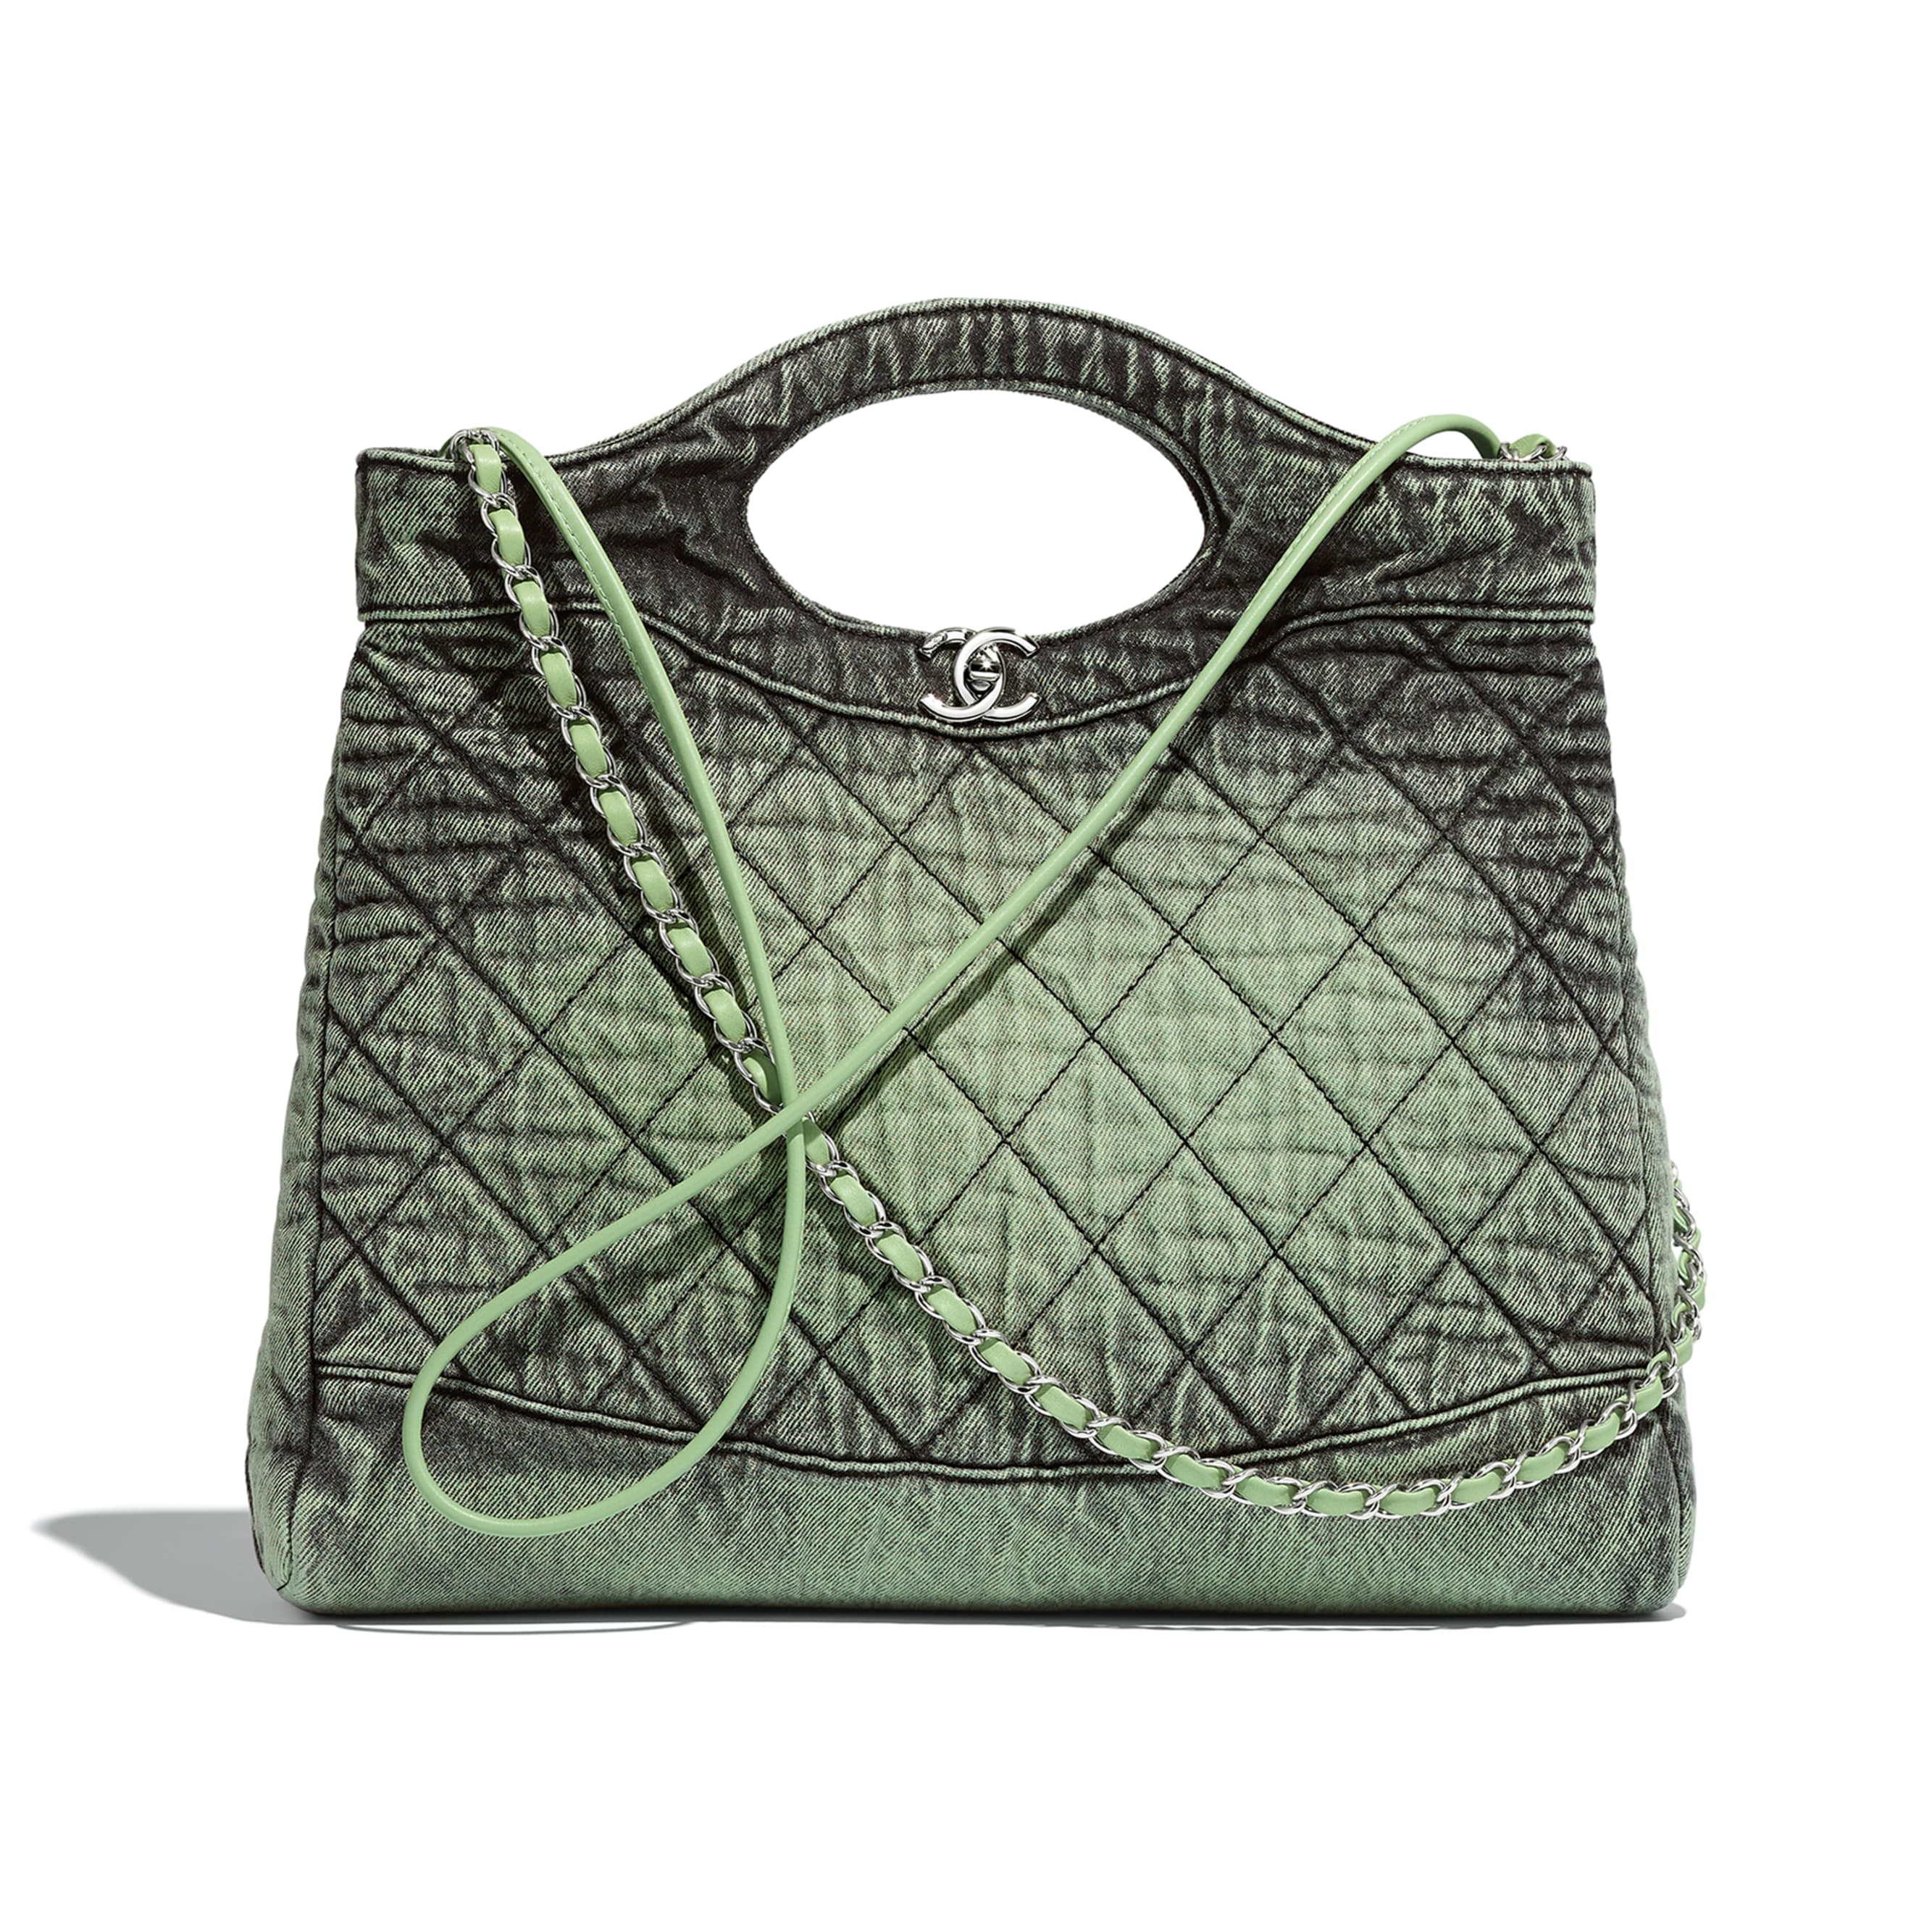 CHANEL 31 Shopping Bag - Green & Black - Denim & Silver-Tone Metal - CHANEL - Default view - see standard sized version